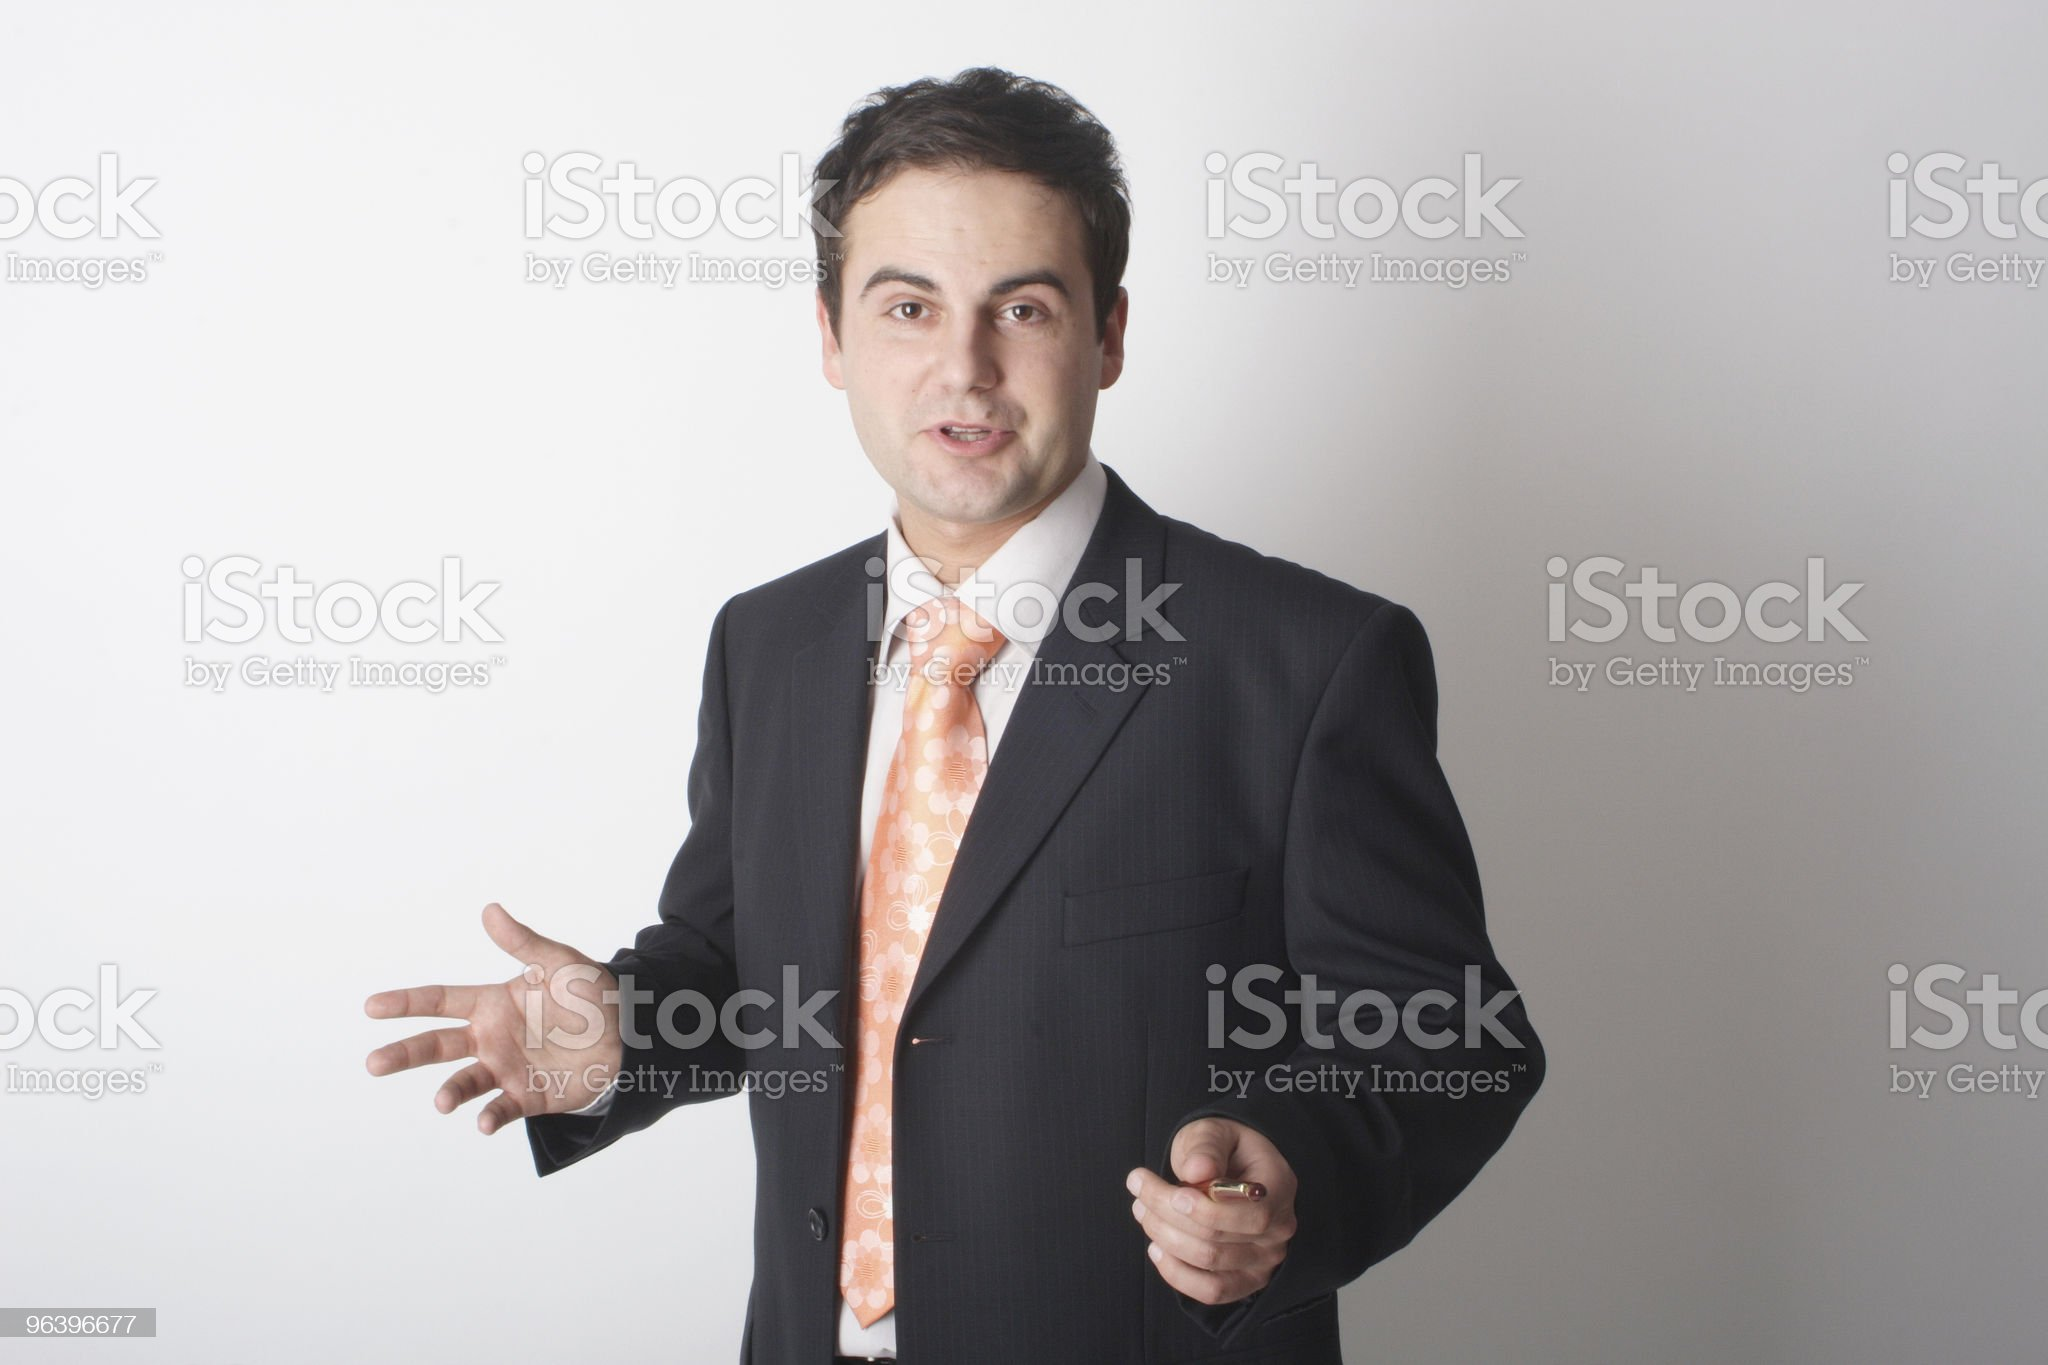 Business man during presentation - close up royalty-free stock photo